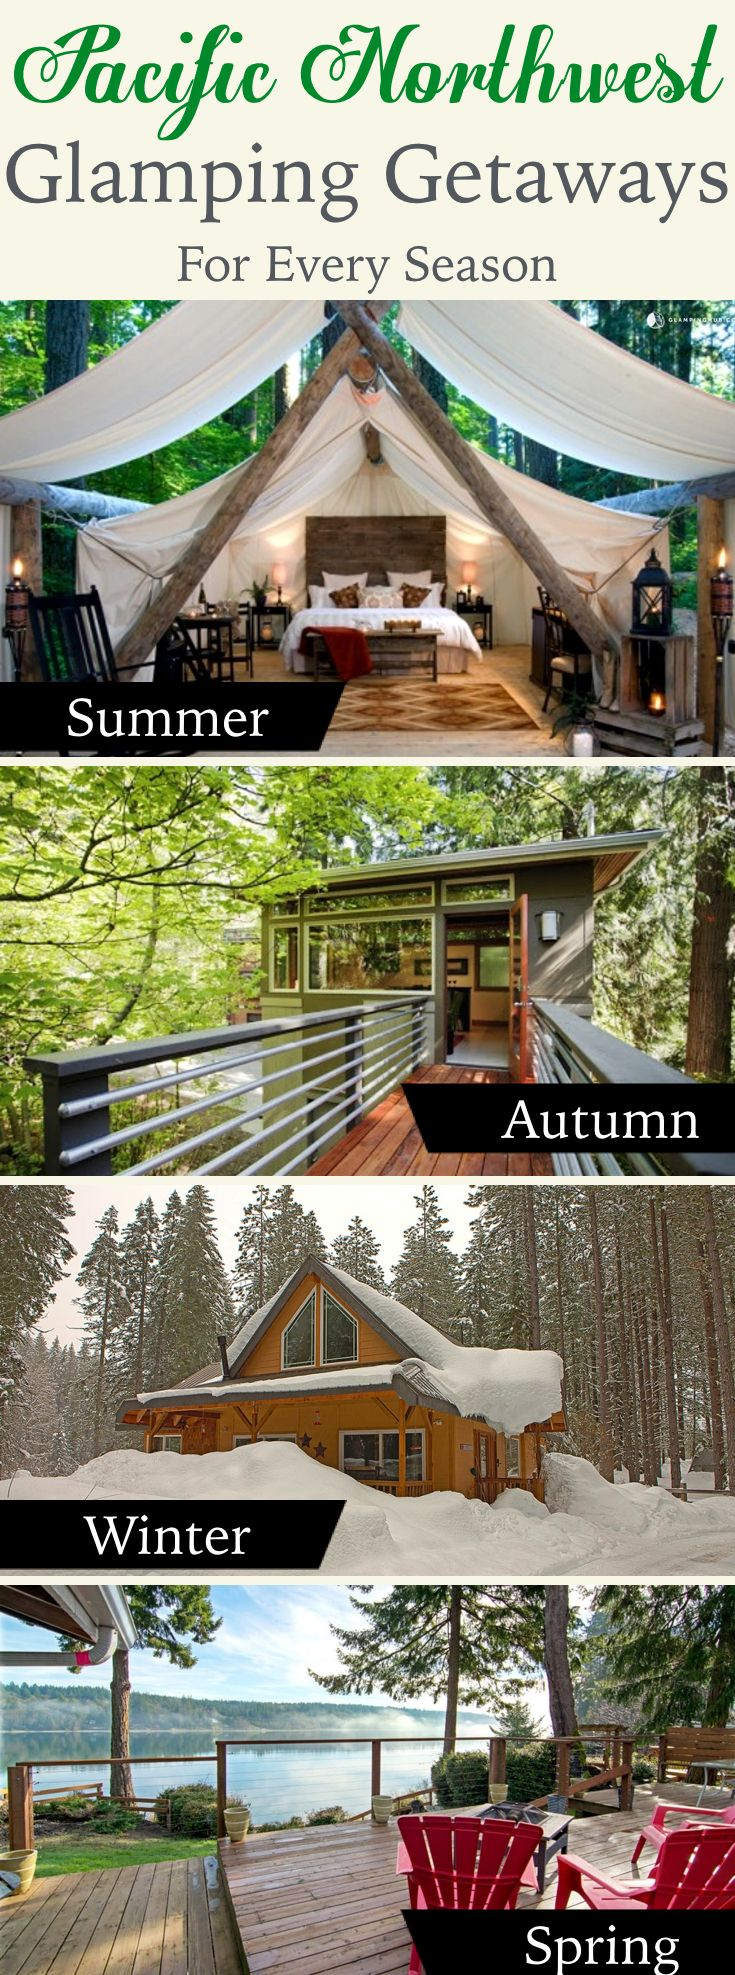 The best glamping spots in the Pacific Northwest (Oregon, Washington, etc.) for every season. @glampinghub